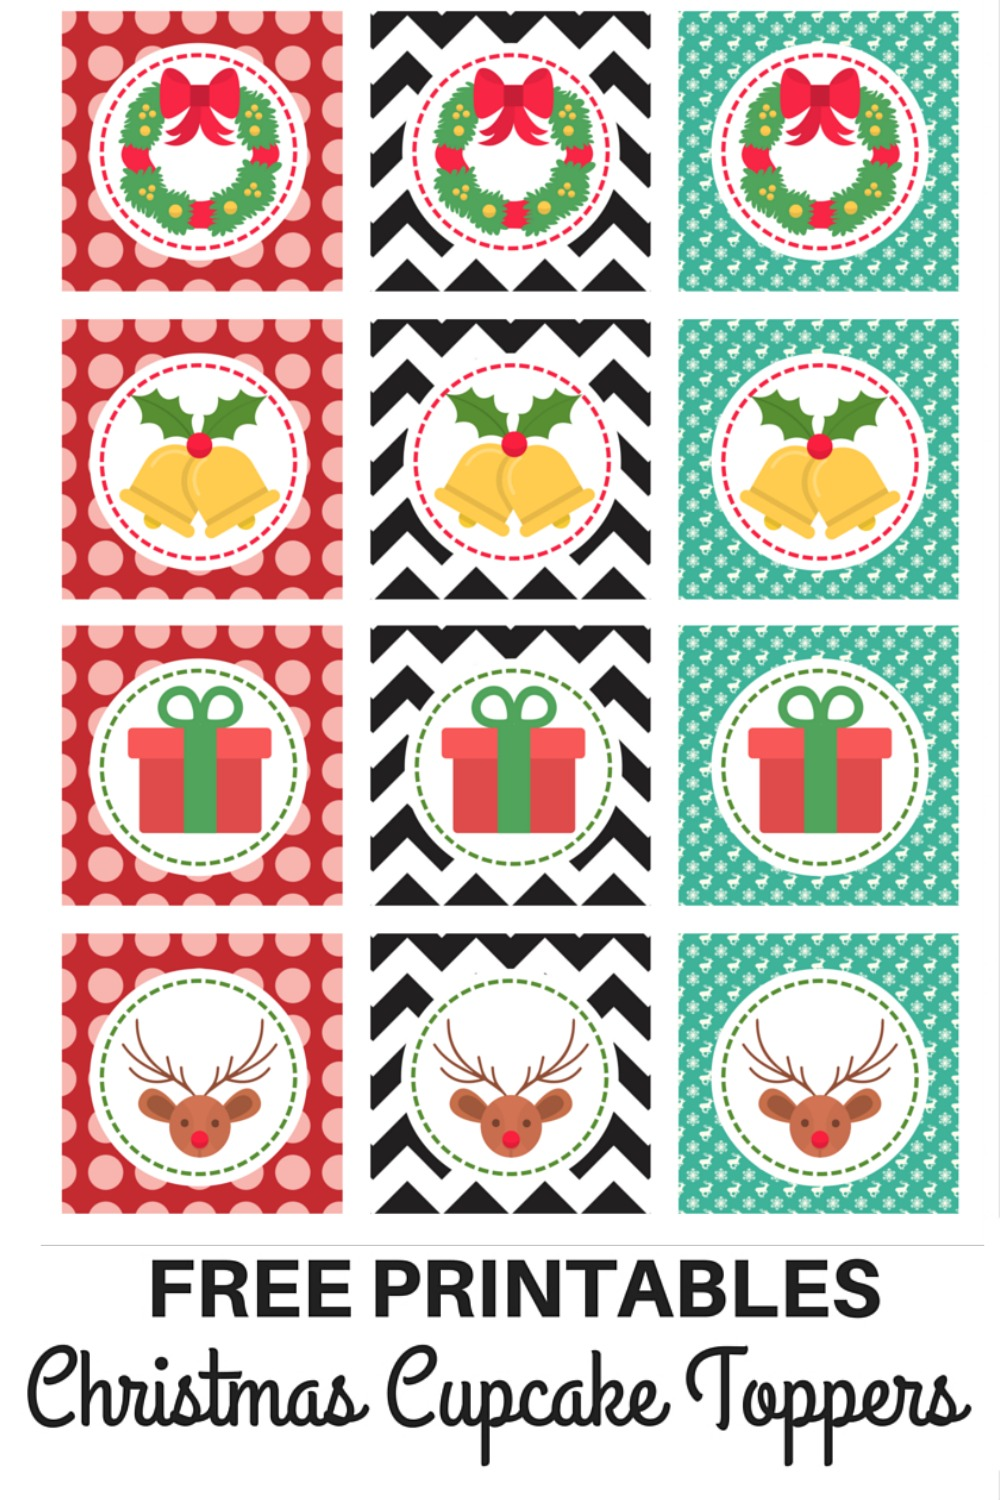 These FREE Christmas cupcake toppers are easy to download and use at your Christmas parties. They are great for party styling.